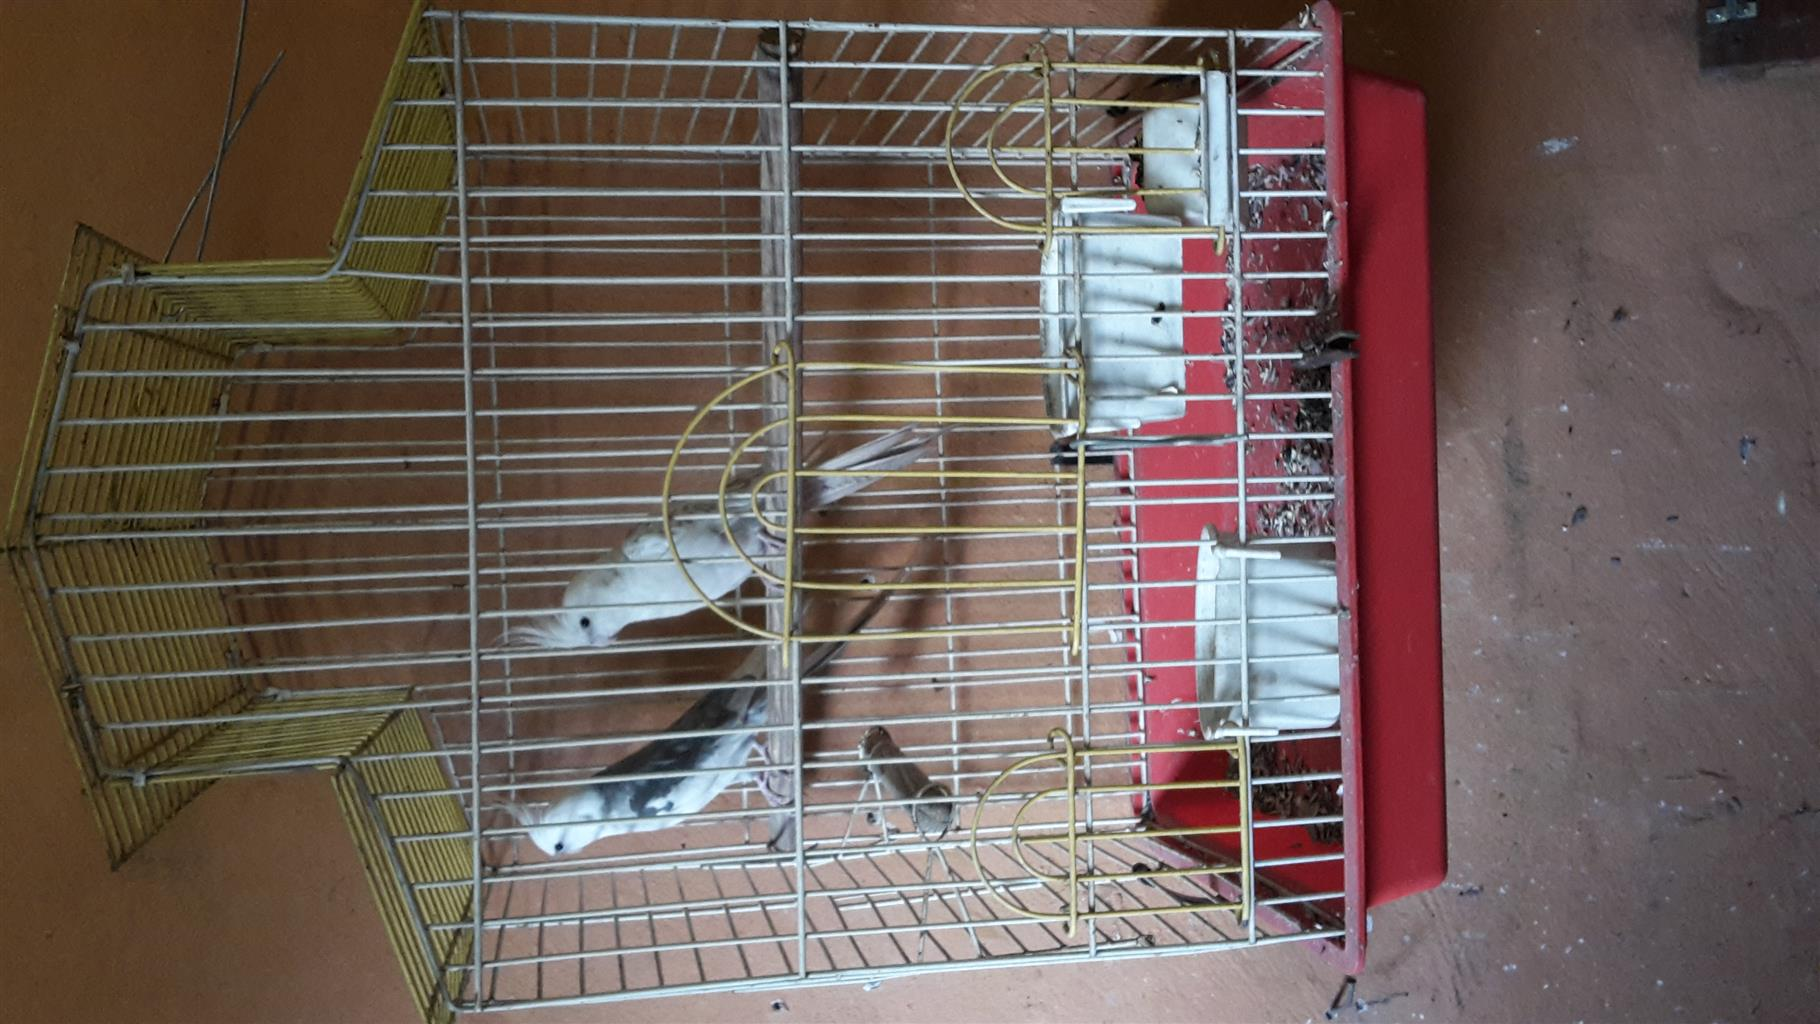 Breeding Pair (f) + (m) cockatiels with Cage